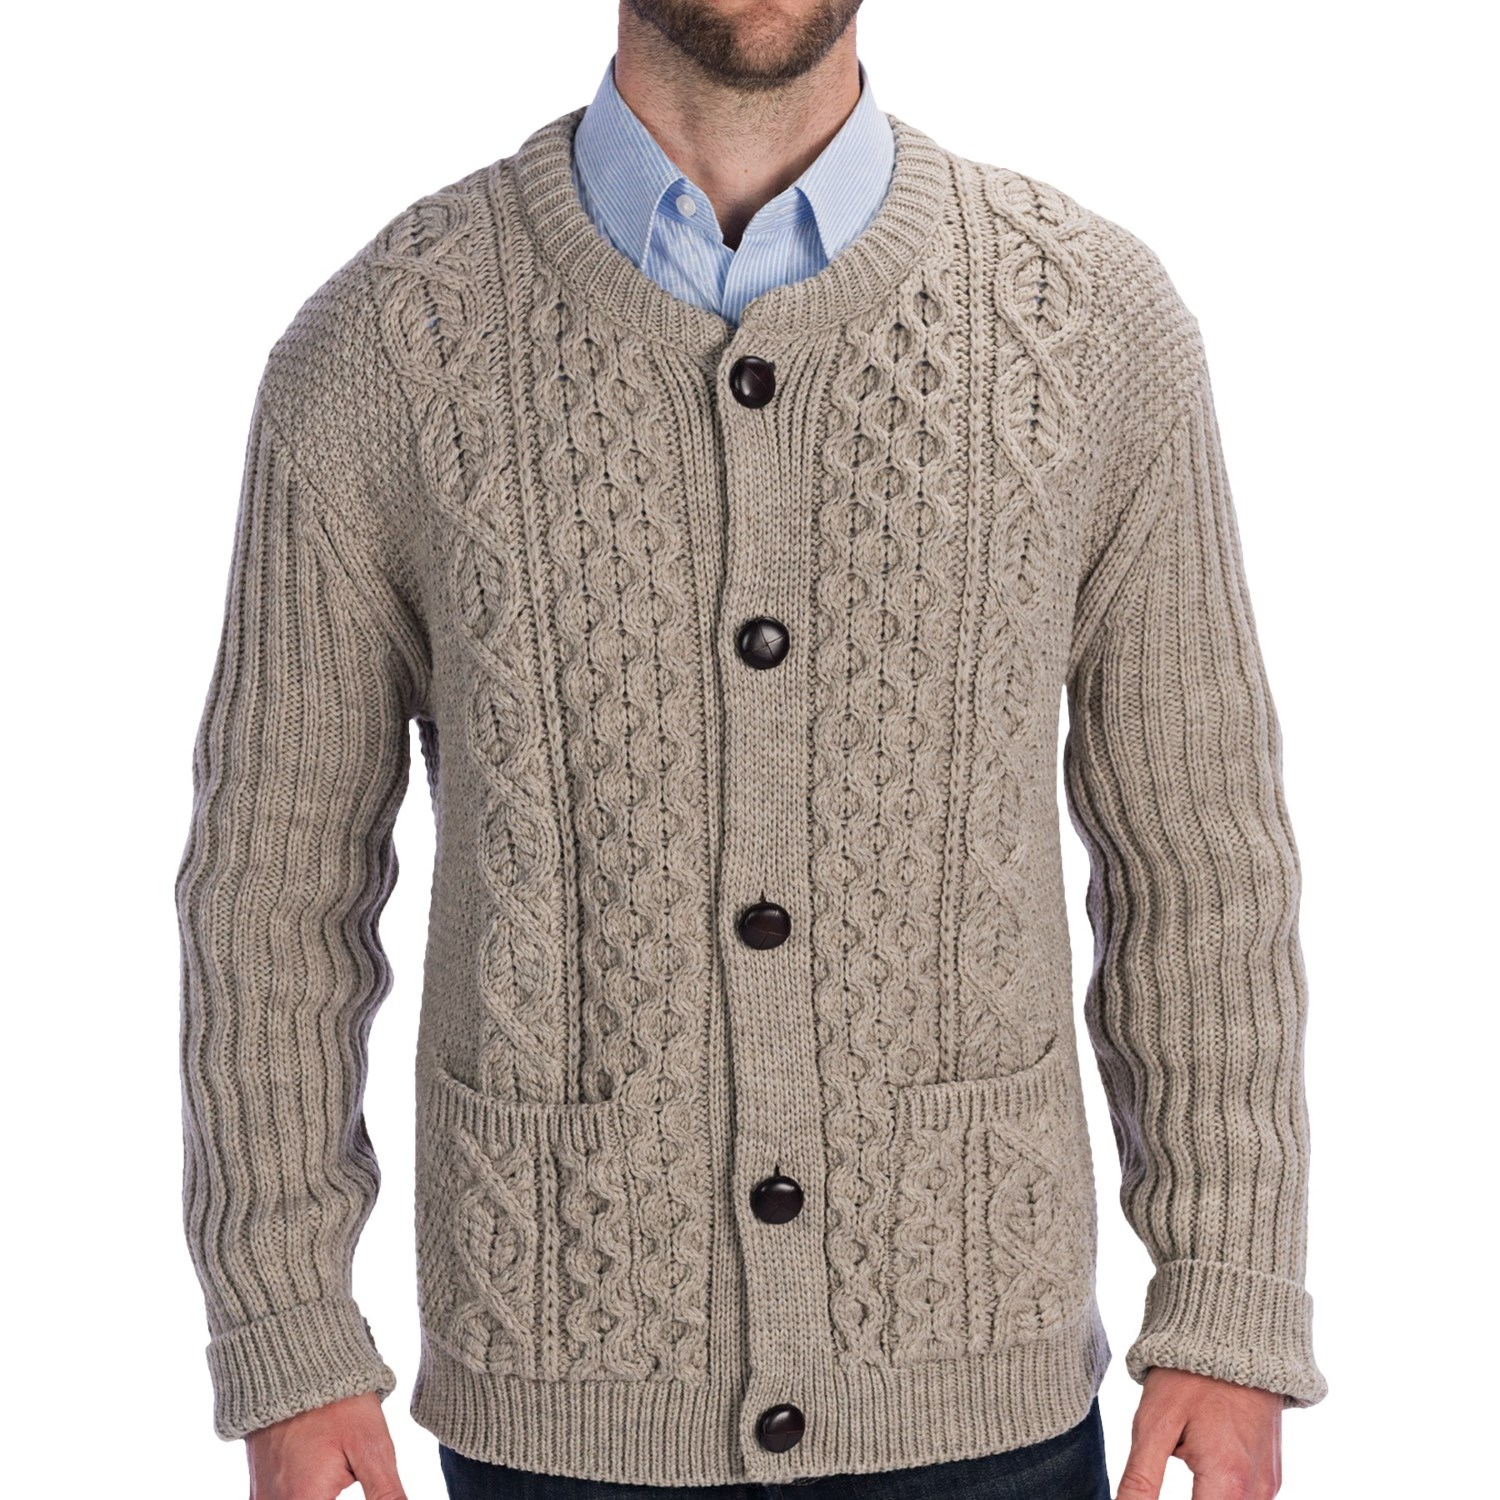 Mens Wool Cardigan Sweater Sale - Gray Cardigan Sweater